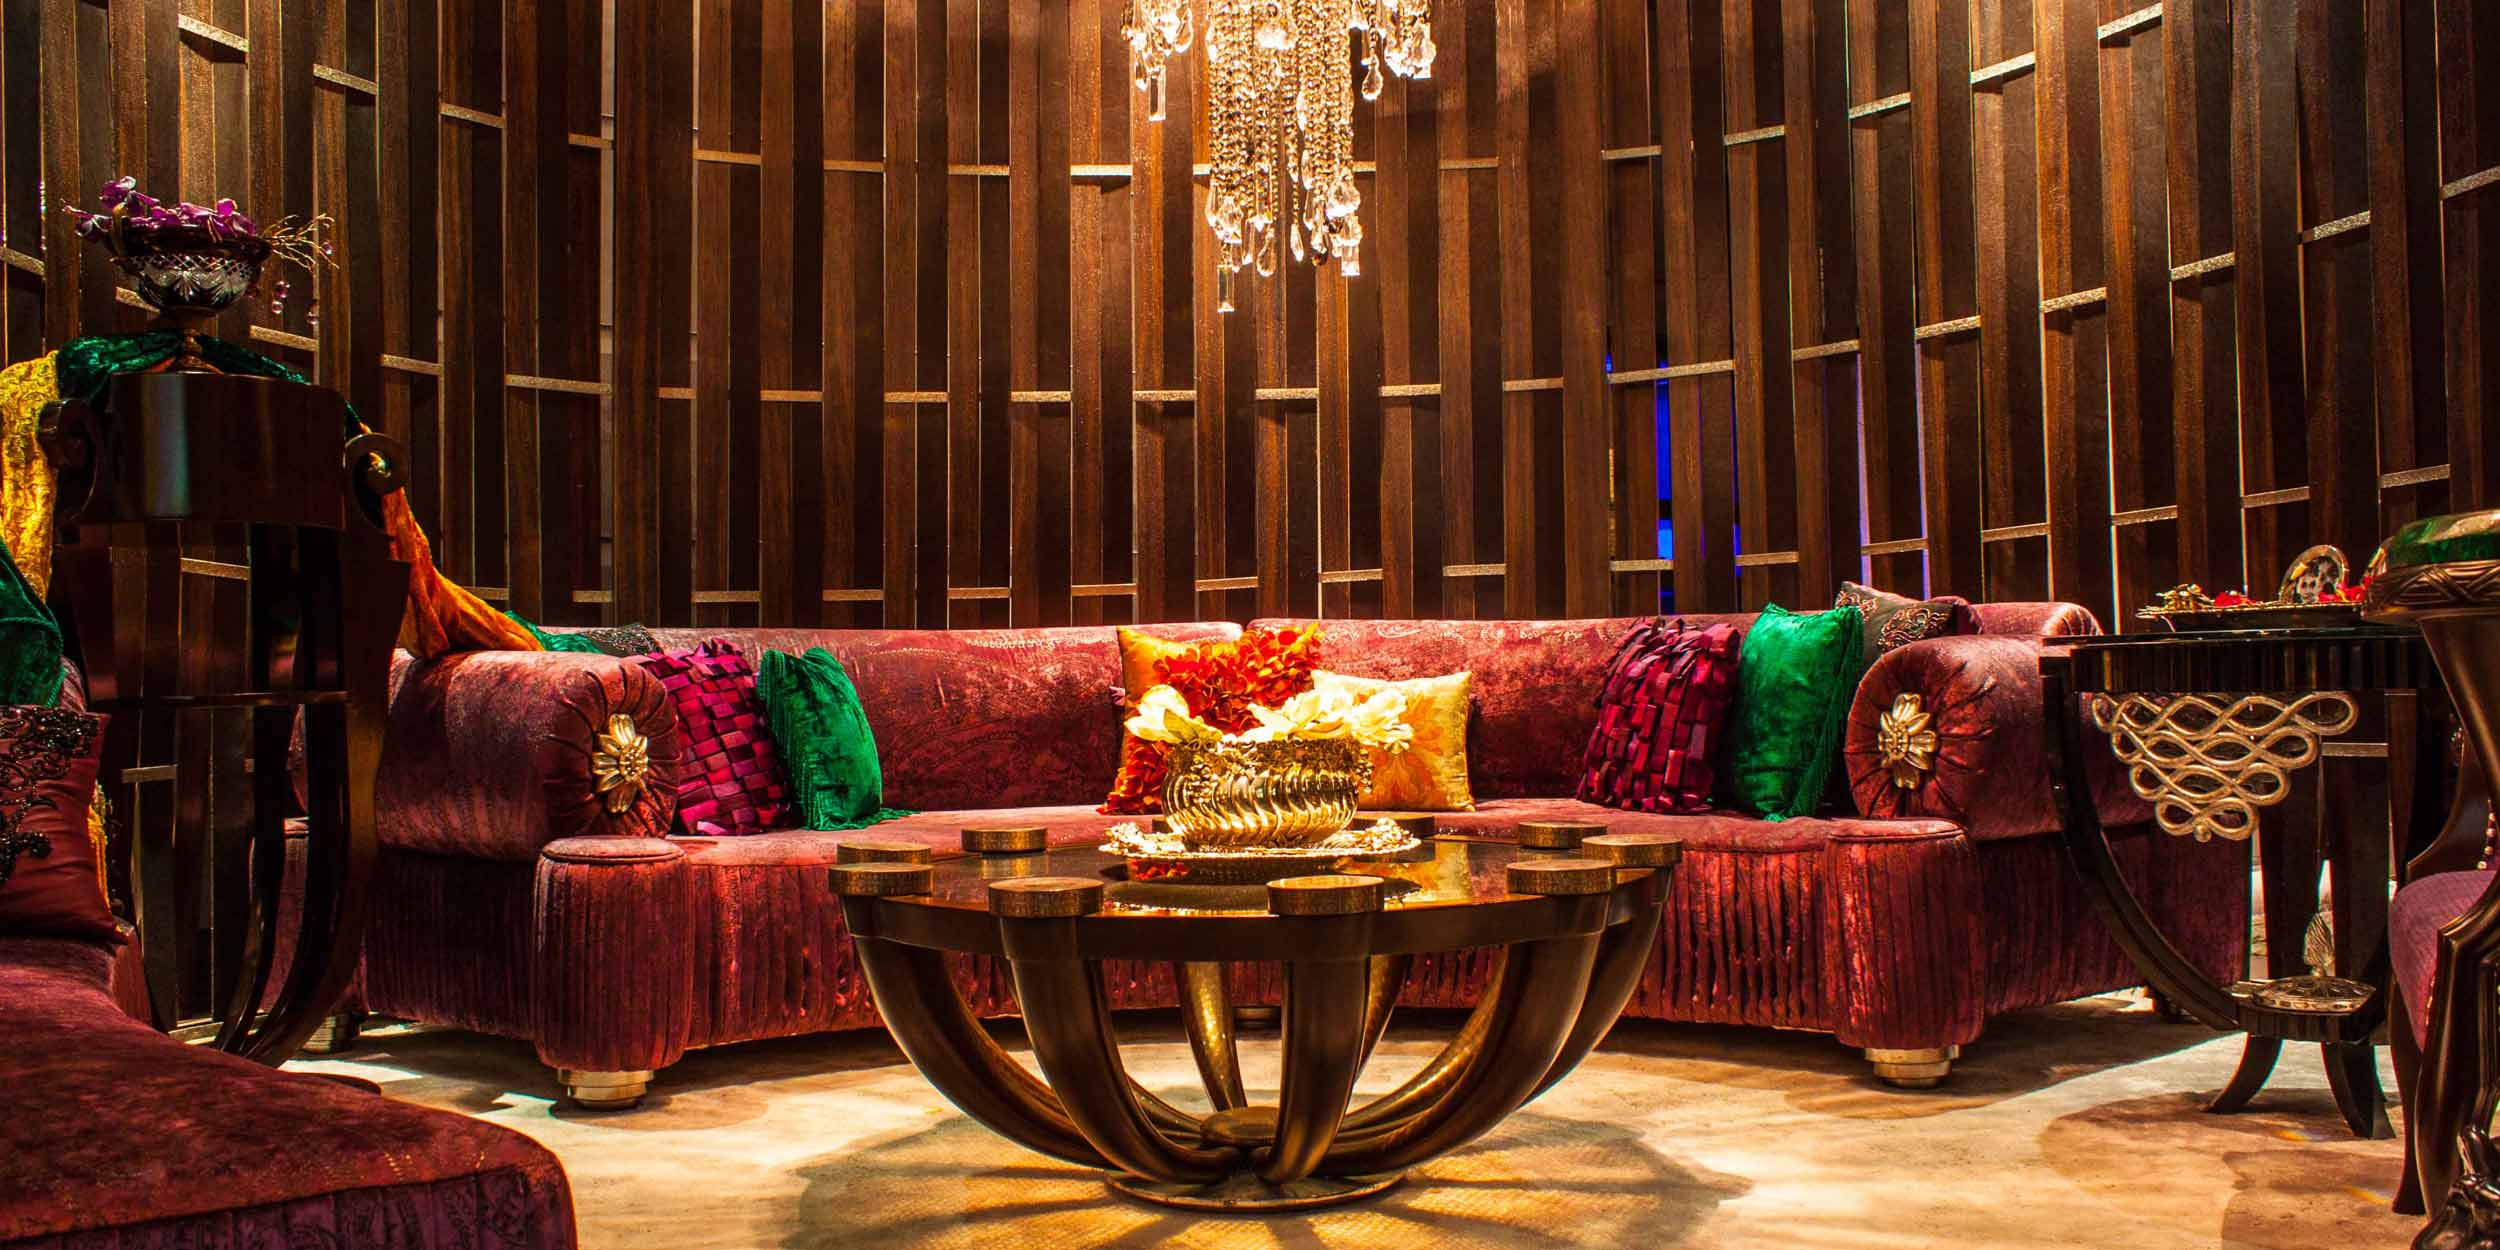 luxury home decor brands in india la sorogeeka is reshaping india s interior design 13521